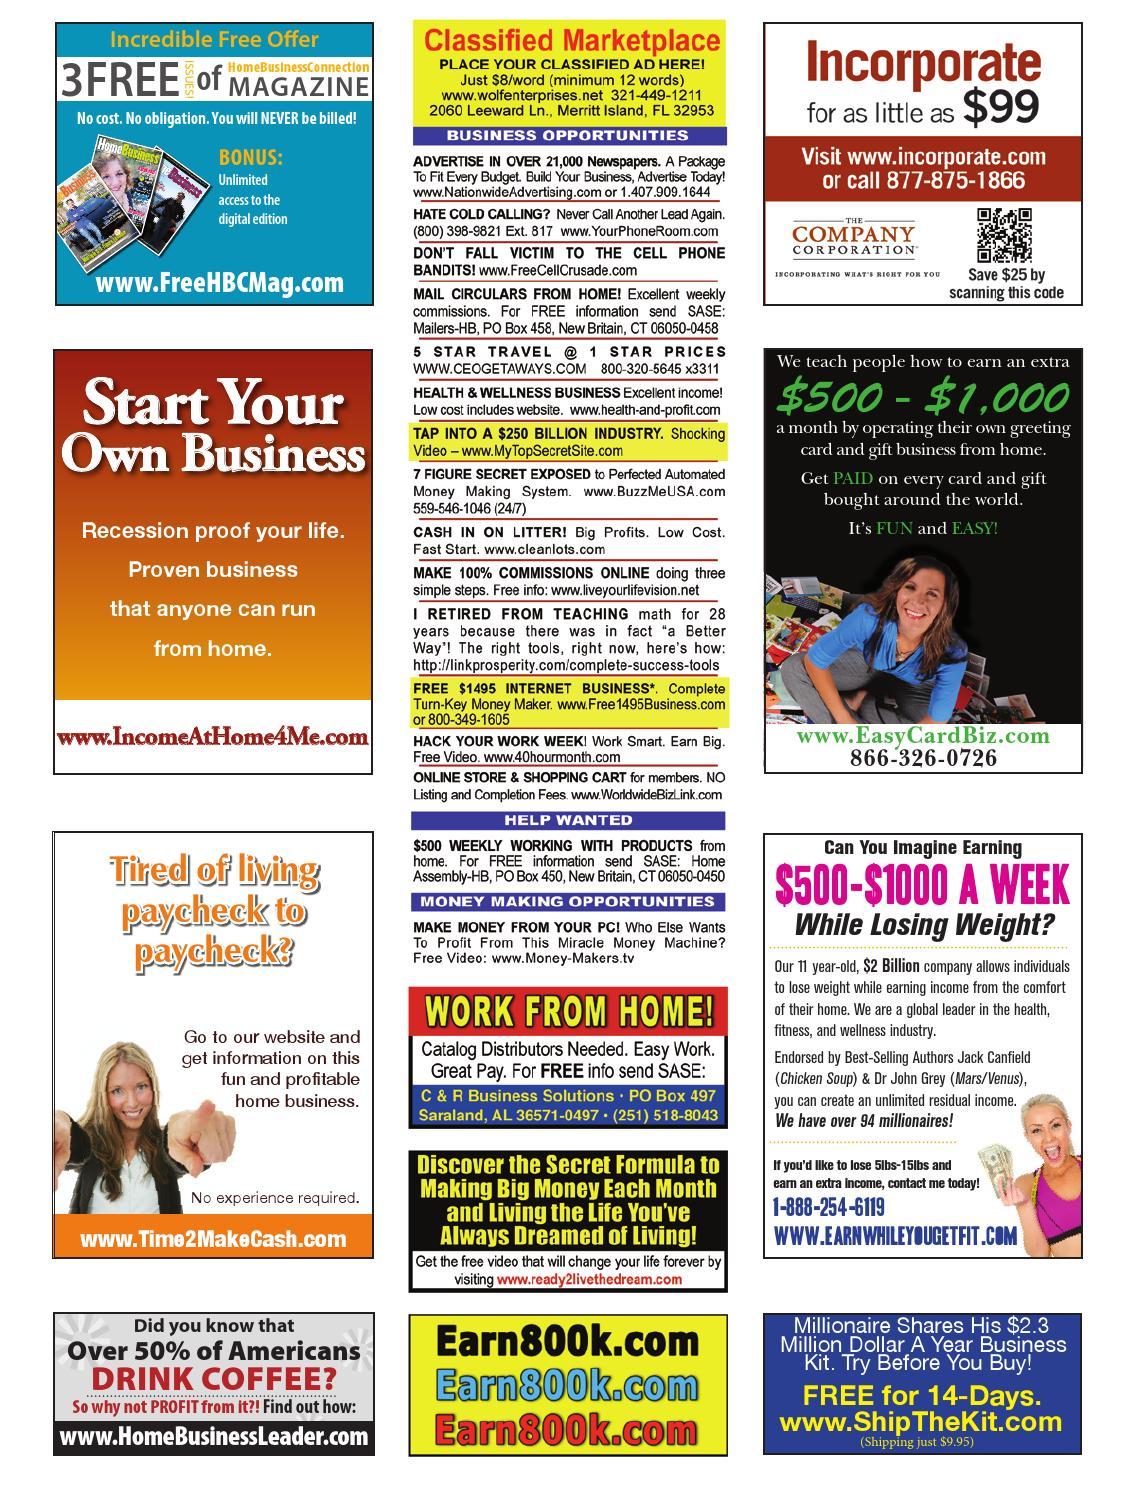 Home Business Connection Magazine October 2013 By Cutting Edge